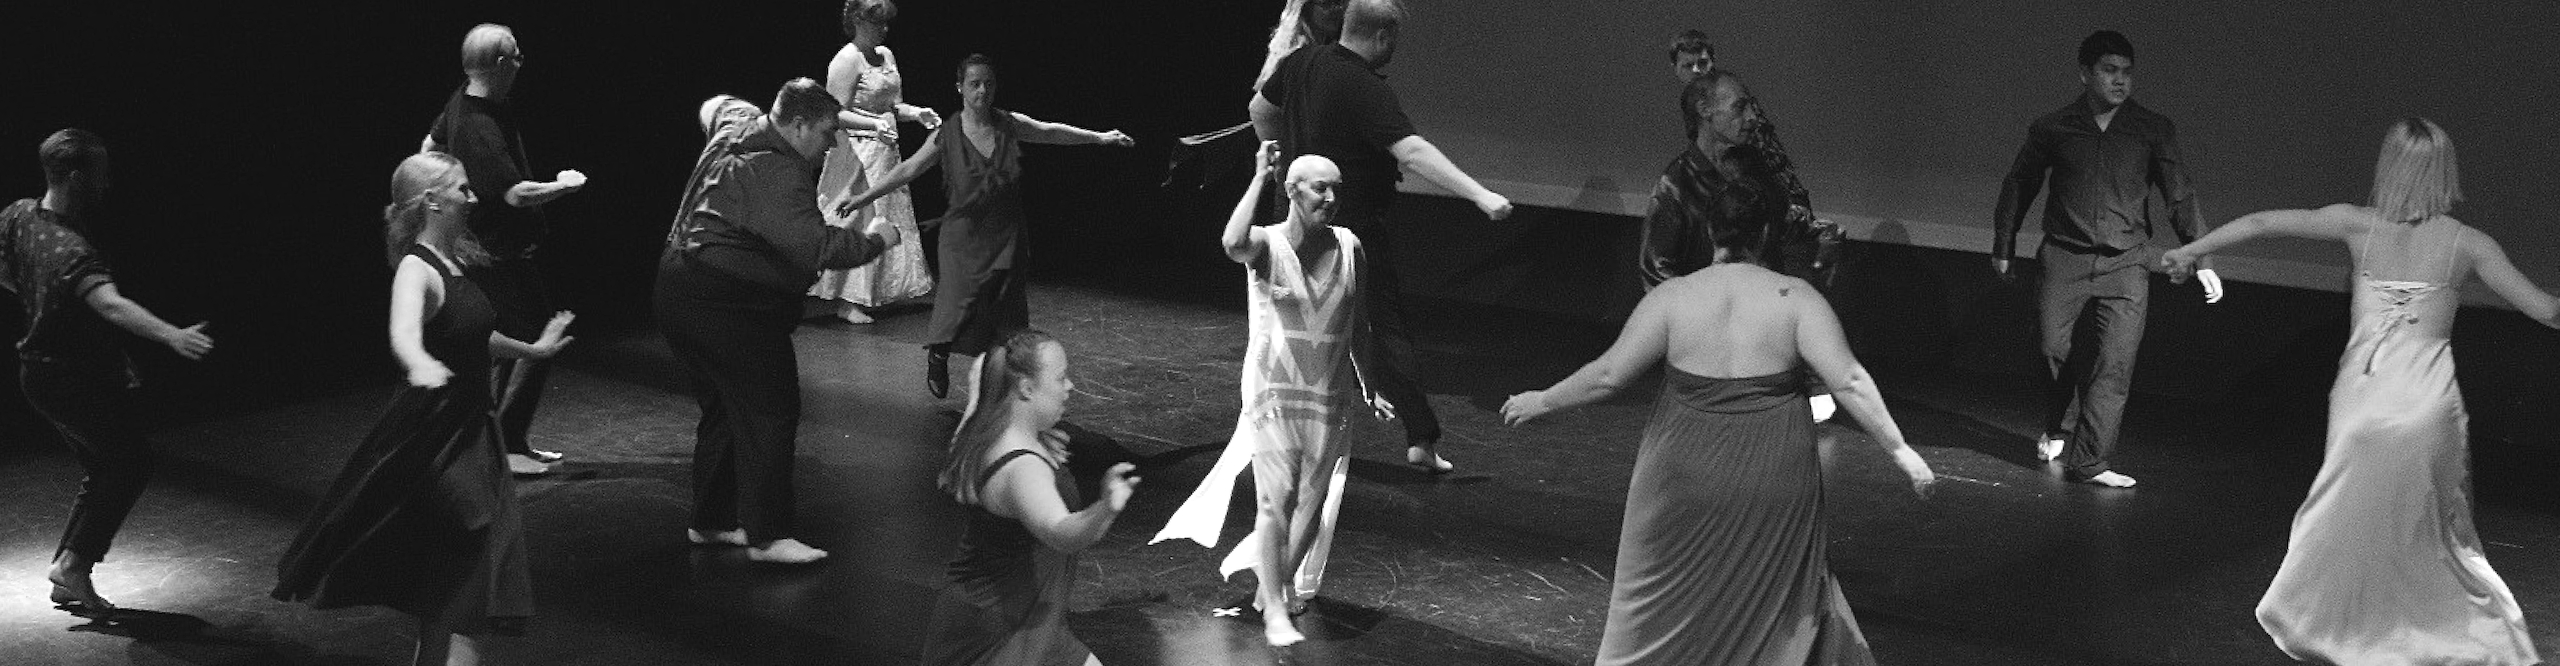 sixteen people of different ages, genders, race and appearance dance on stage.